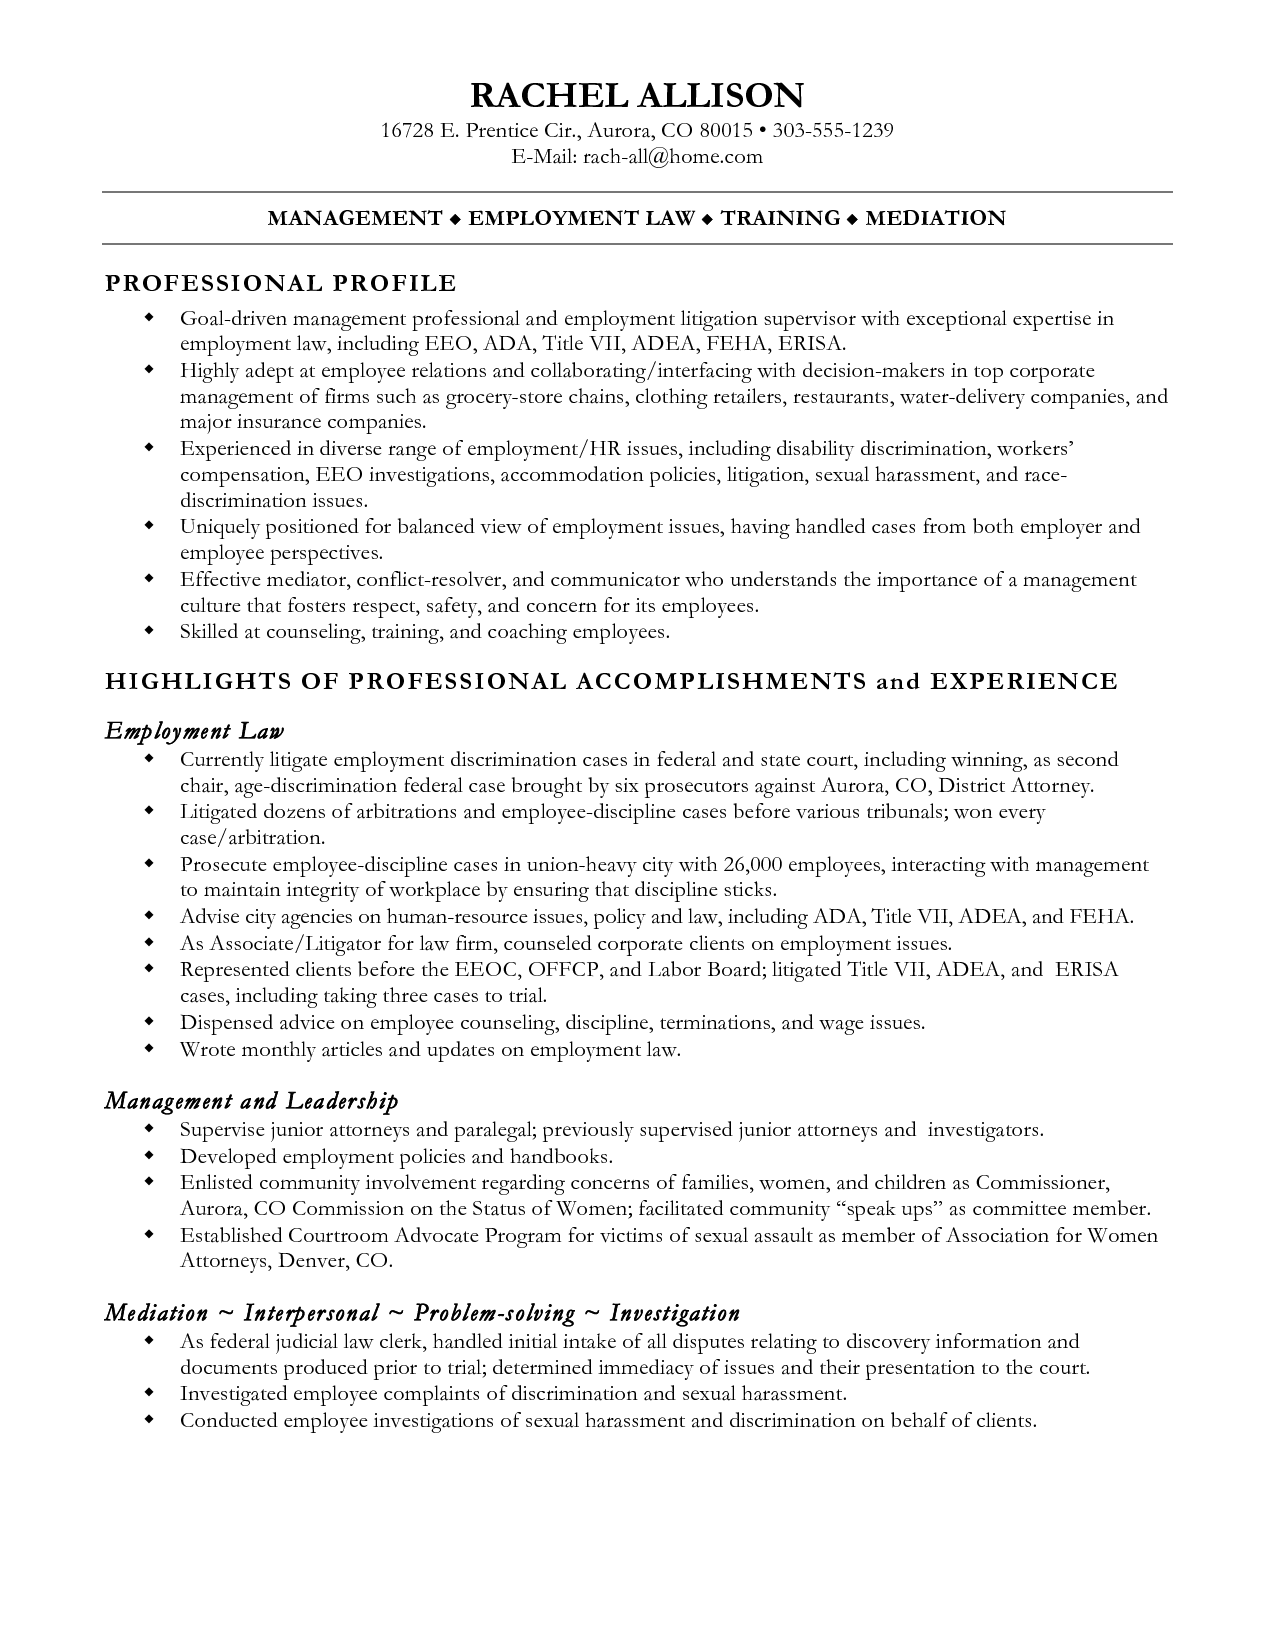 criminal investigator sample resume clinical consultant cover letter